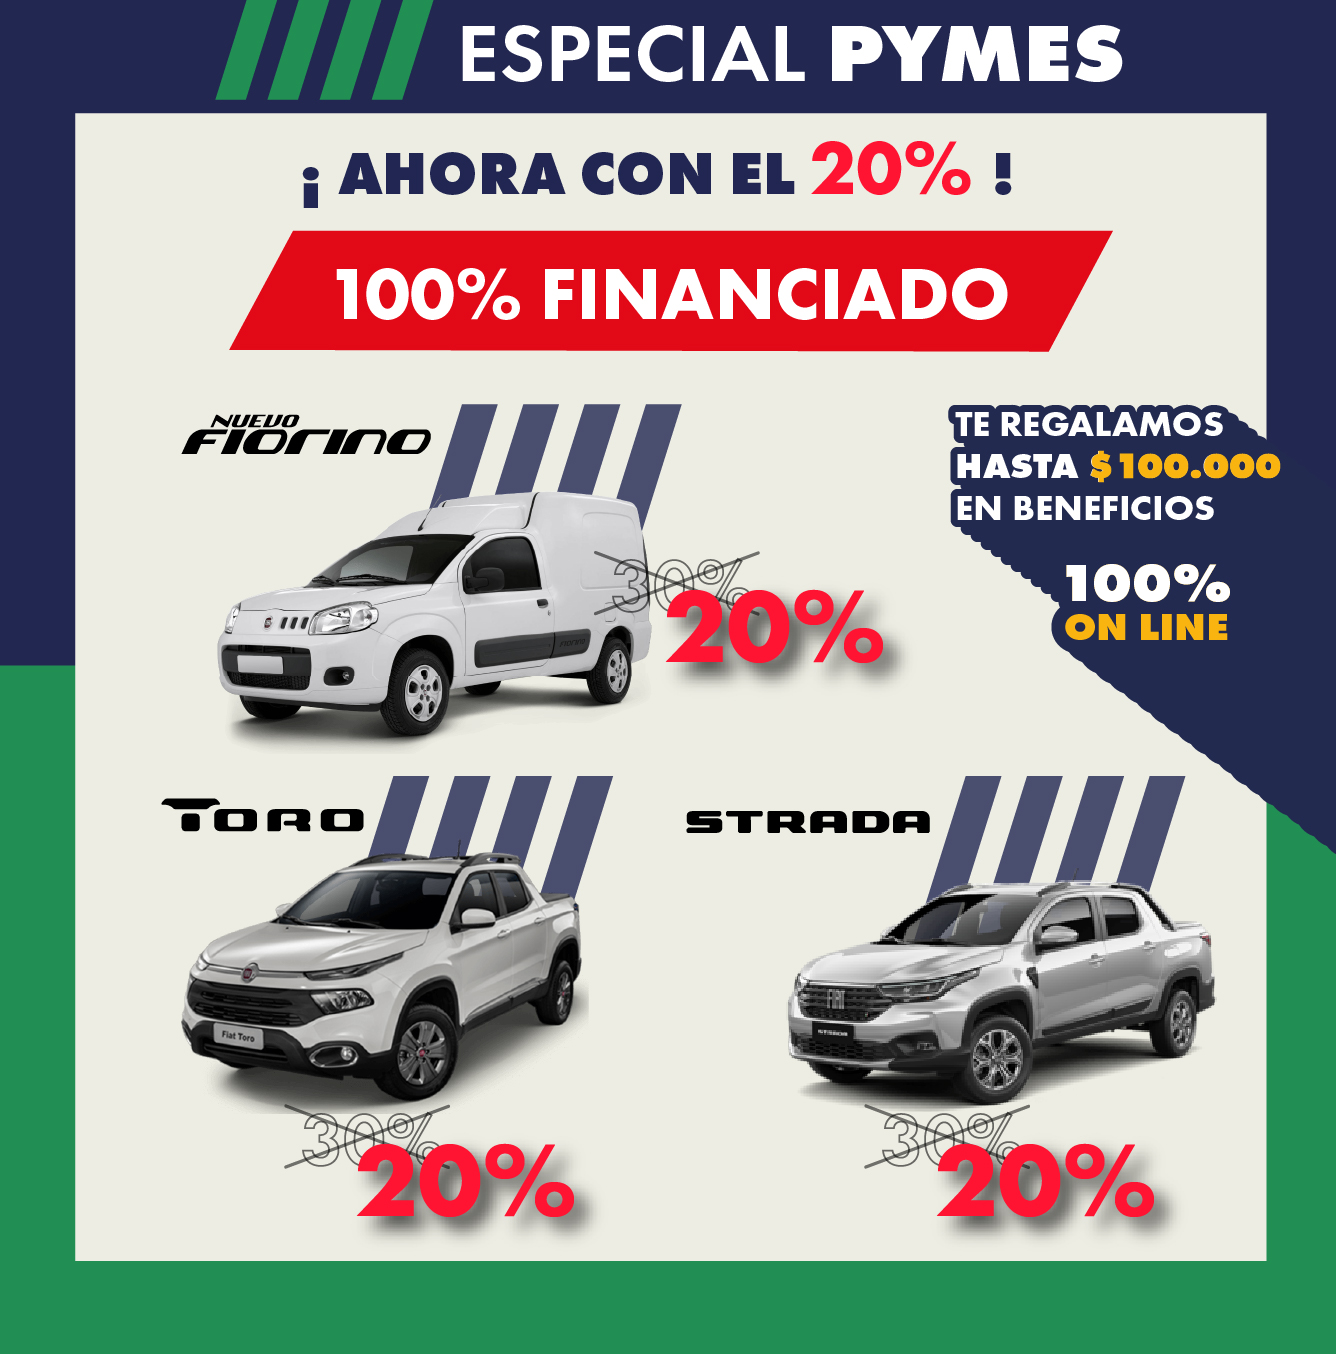 28062021 PA Especial Pymes